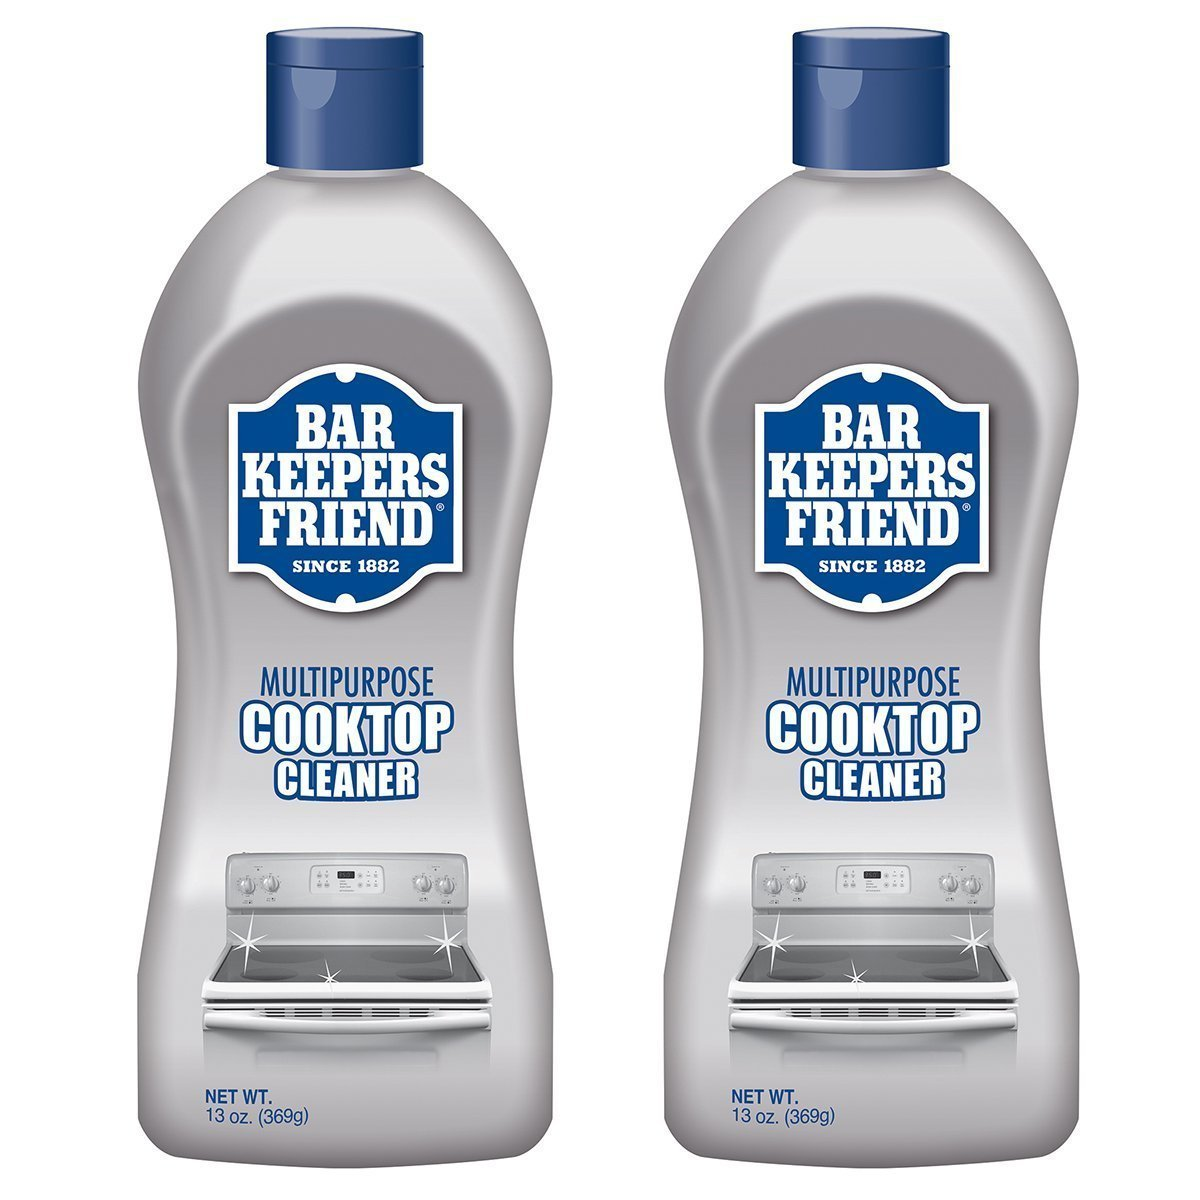 Bar Keepers Friend Multipurpose Ceramic and Glass Cooktop Cleaner | 13-Ounces | 2-Pack